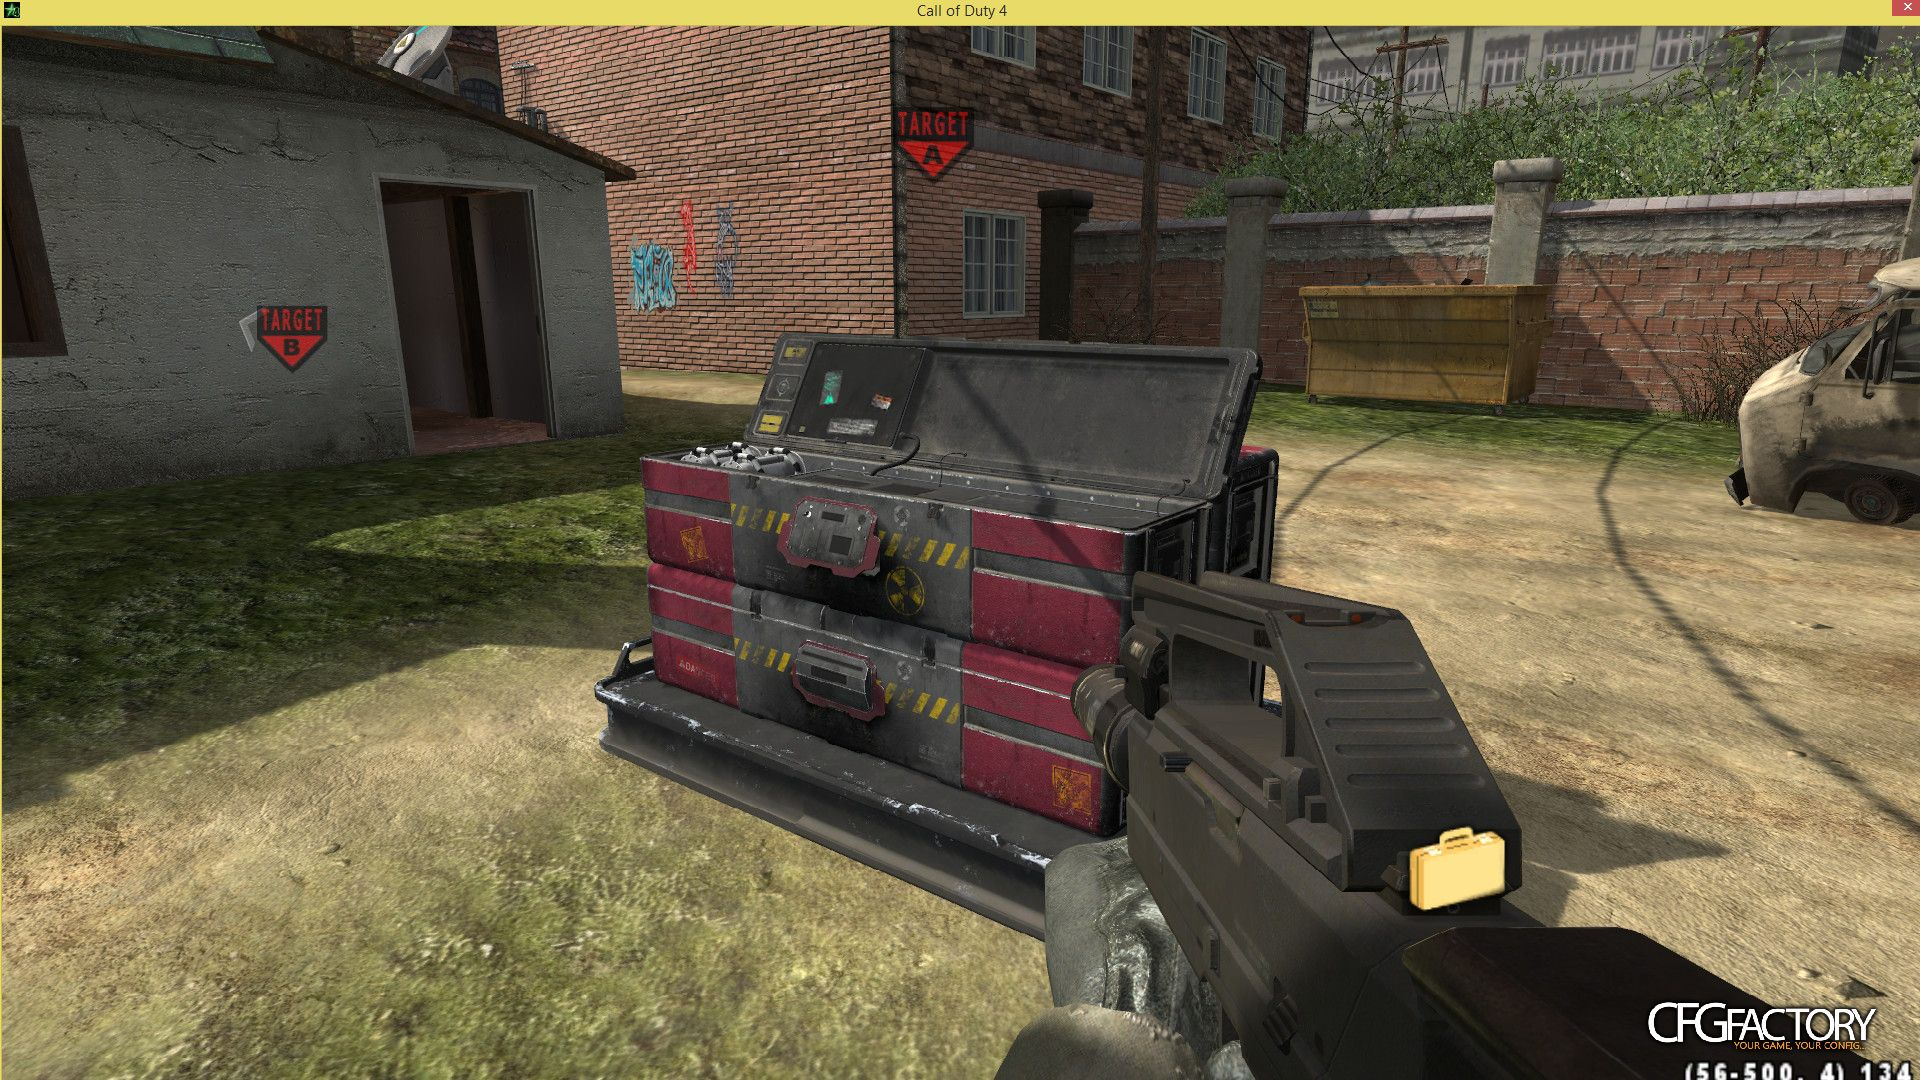 cod4, prefabs, equipment_bombsite_crate, n/a